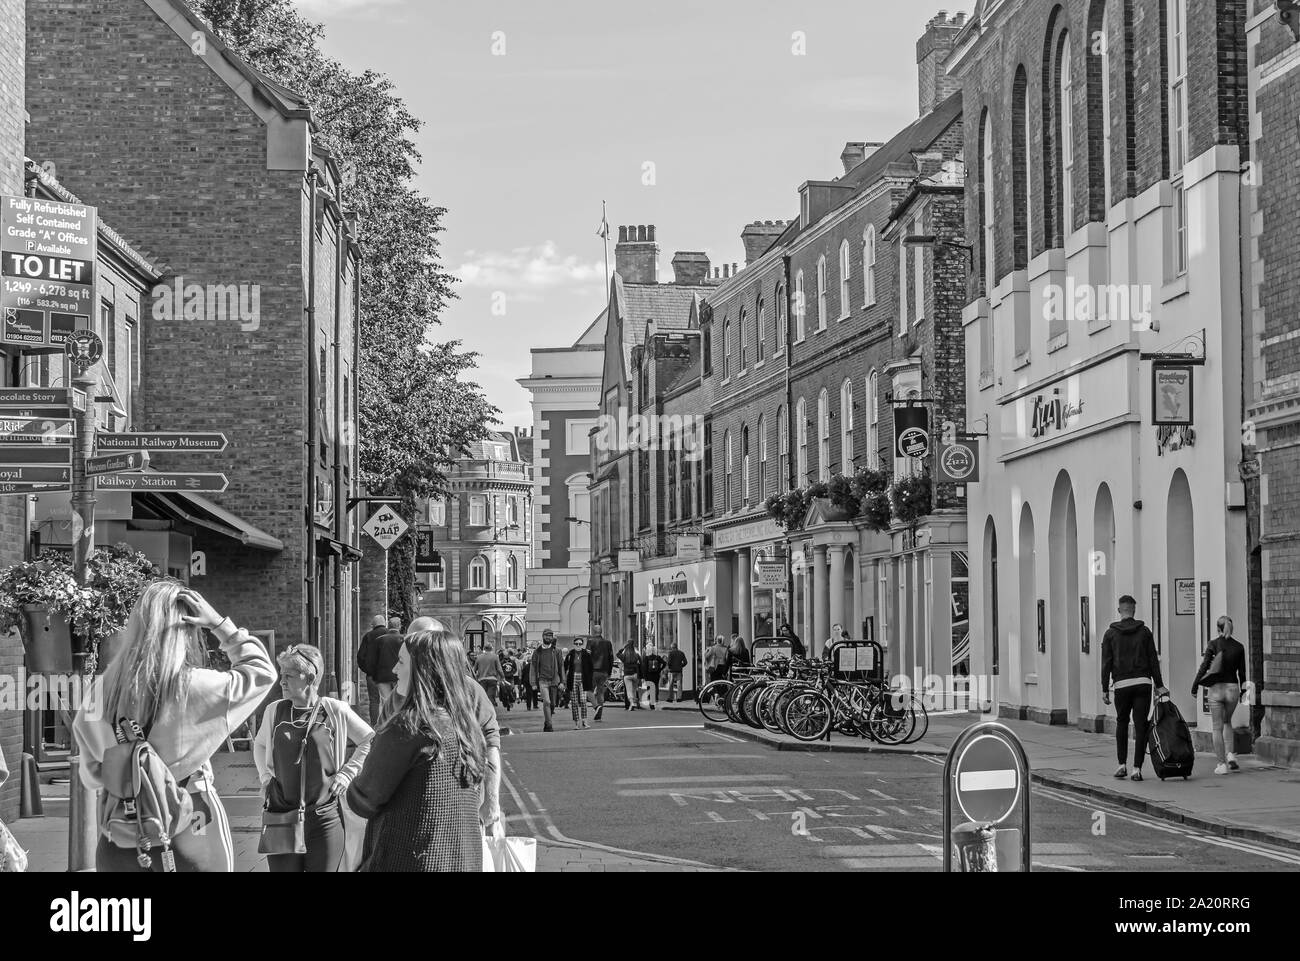 A street scene at the junction of Lendal and Museum Street in York. Shoppers mingle under a signpost and historic buildings line the street. Stock Photo